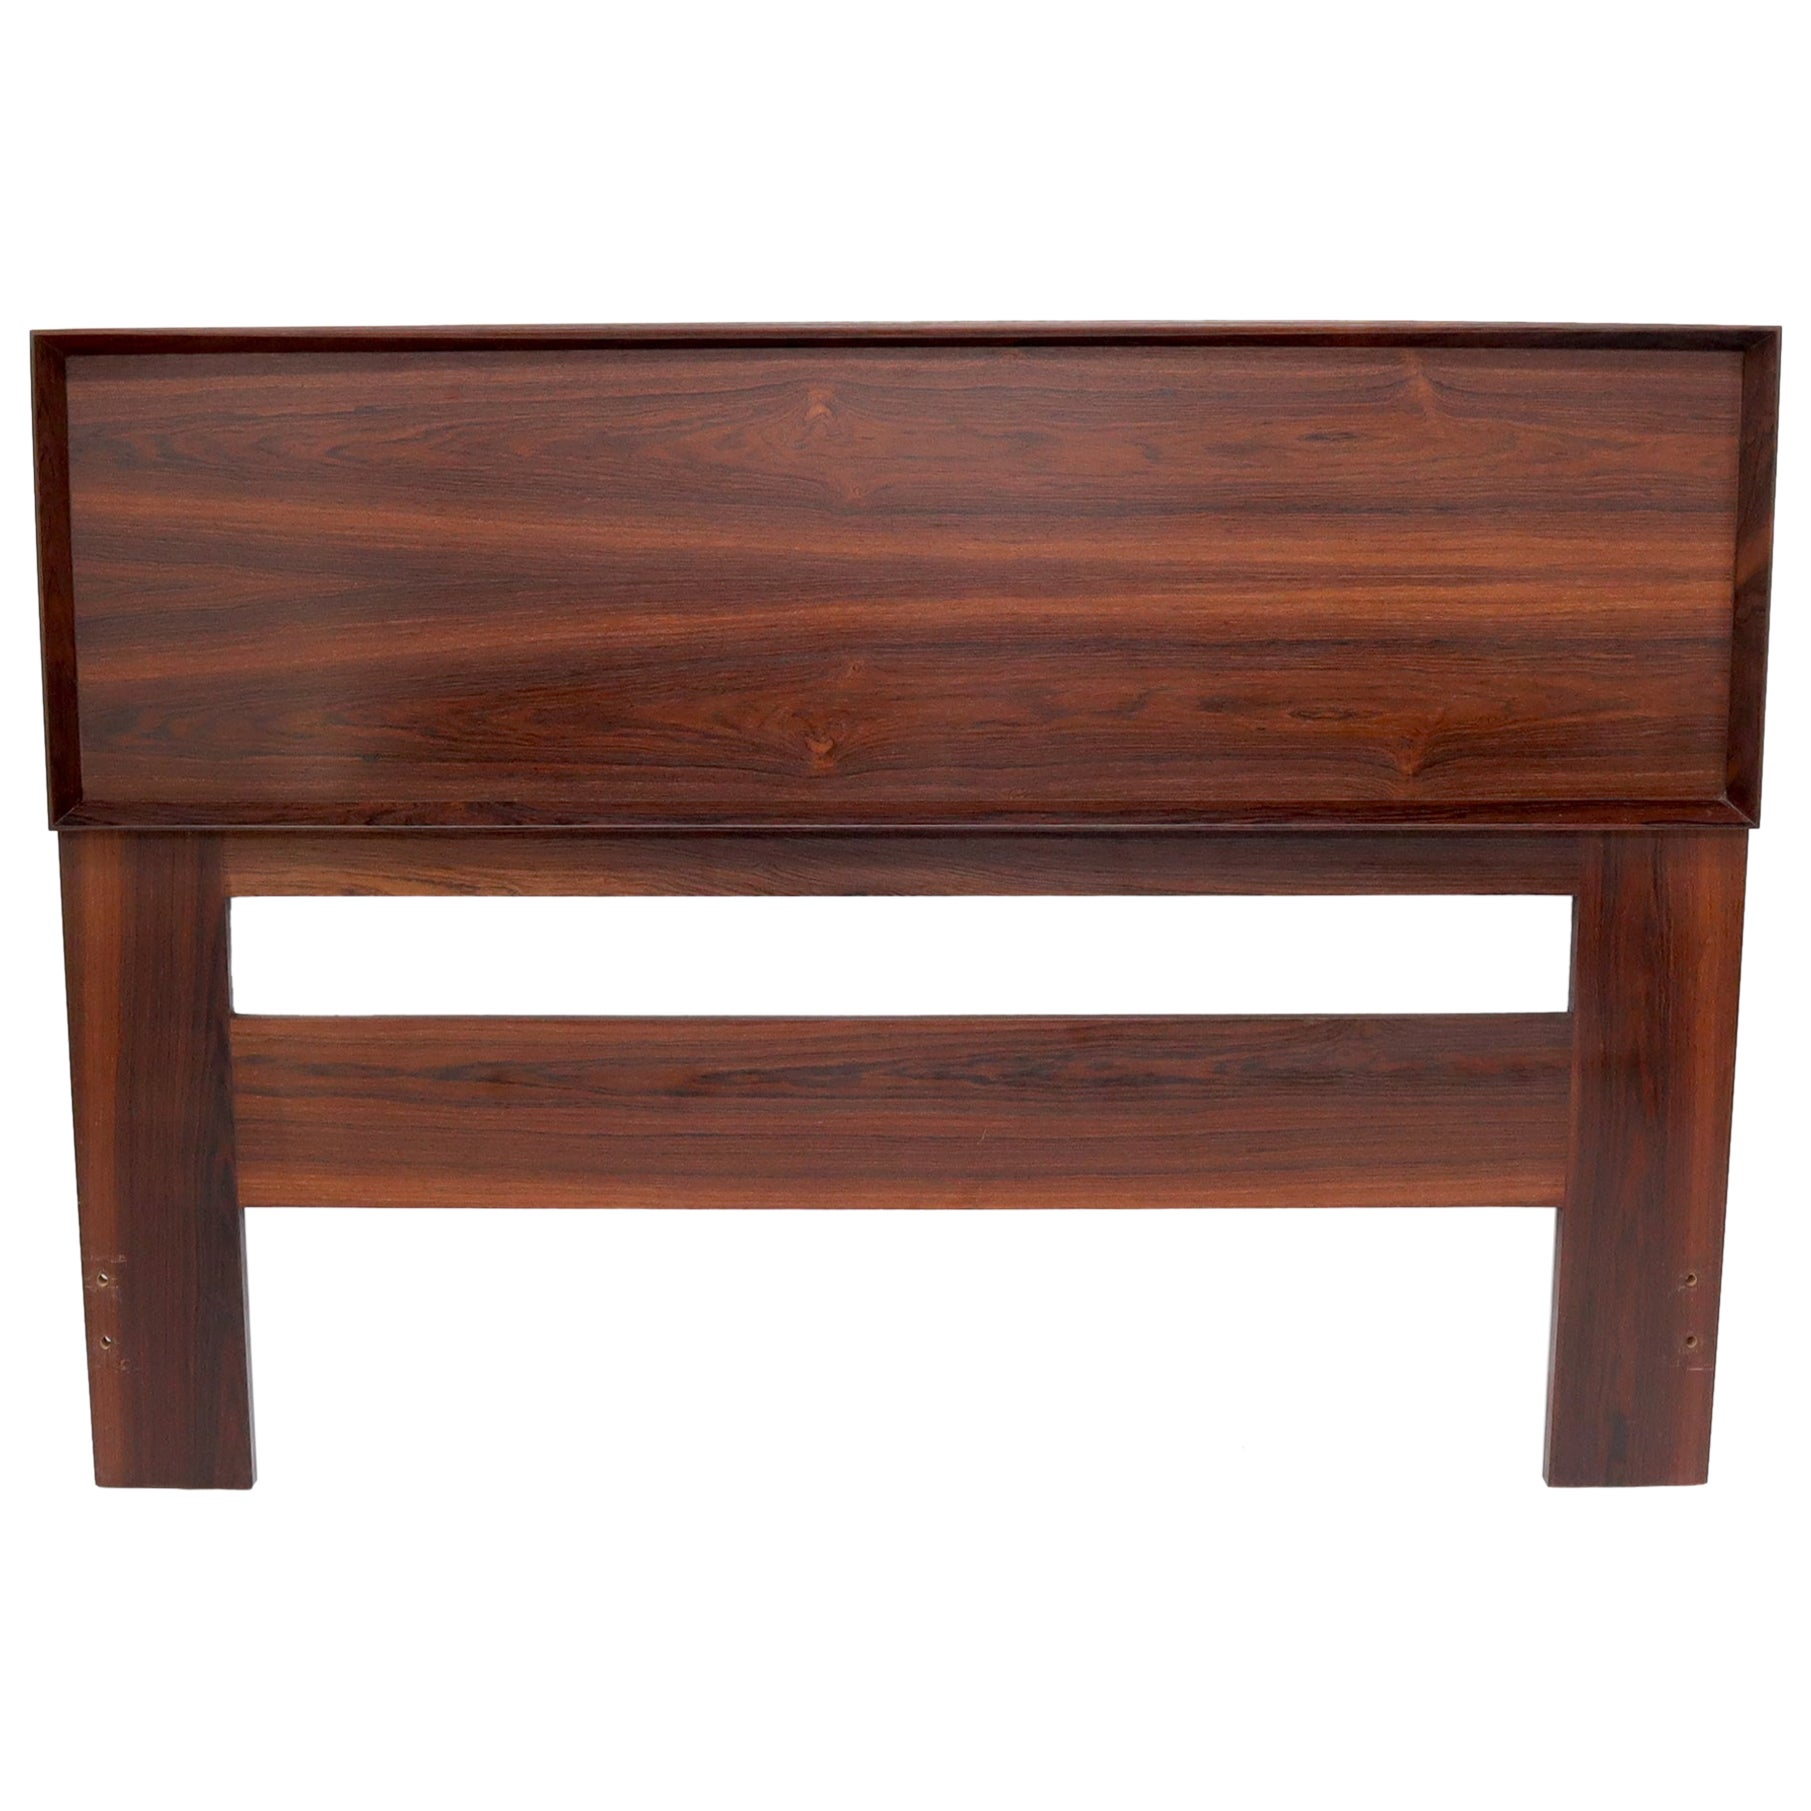 Reversible Cane to Rosewood Queen Size Headboard Bed